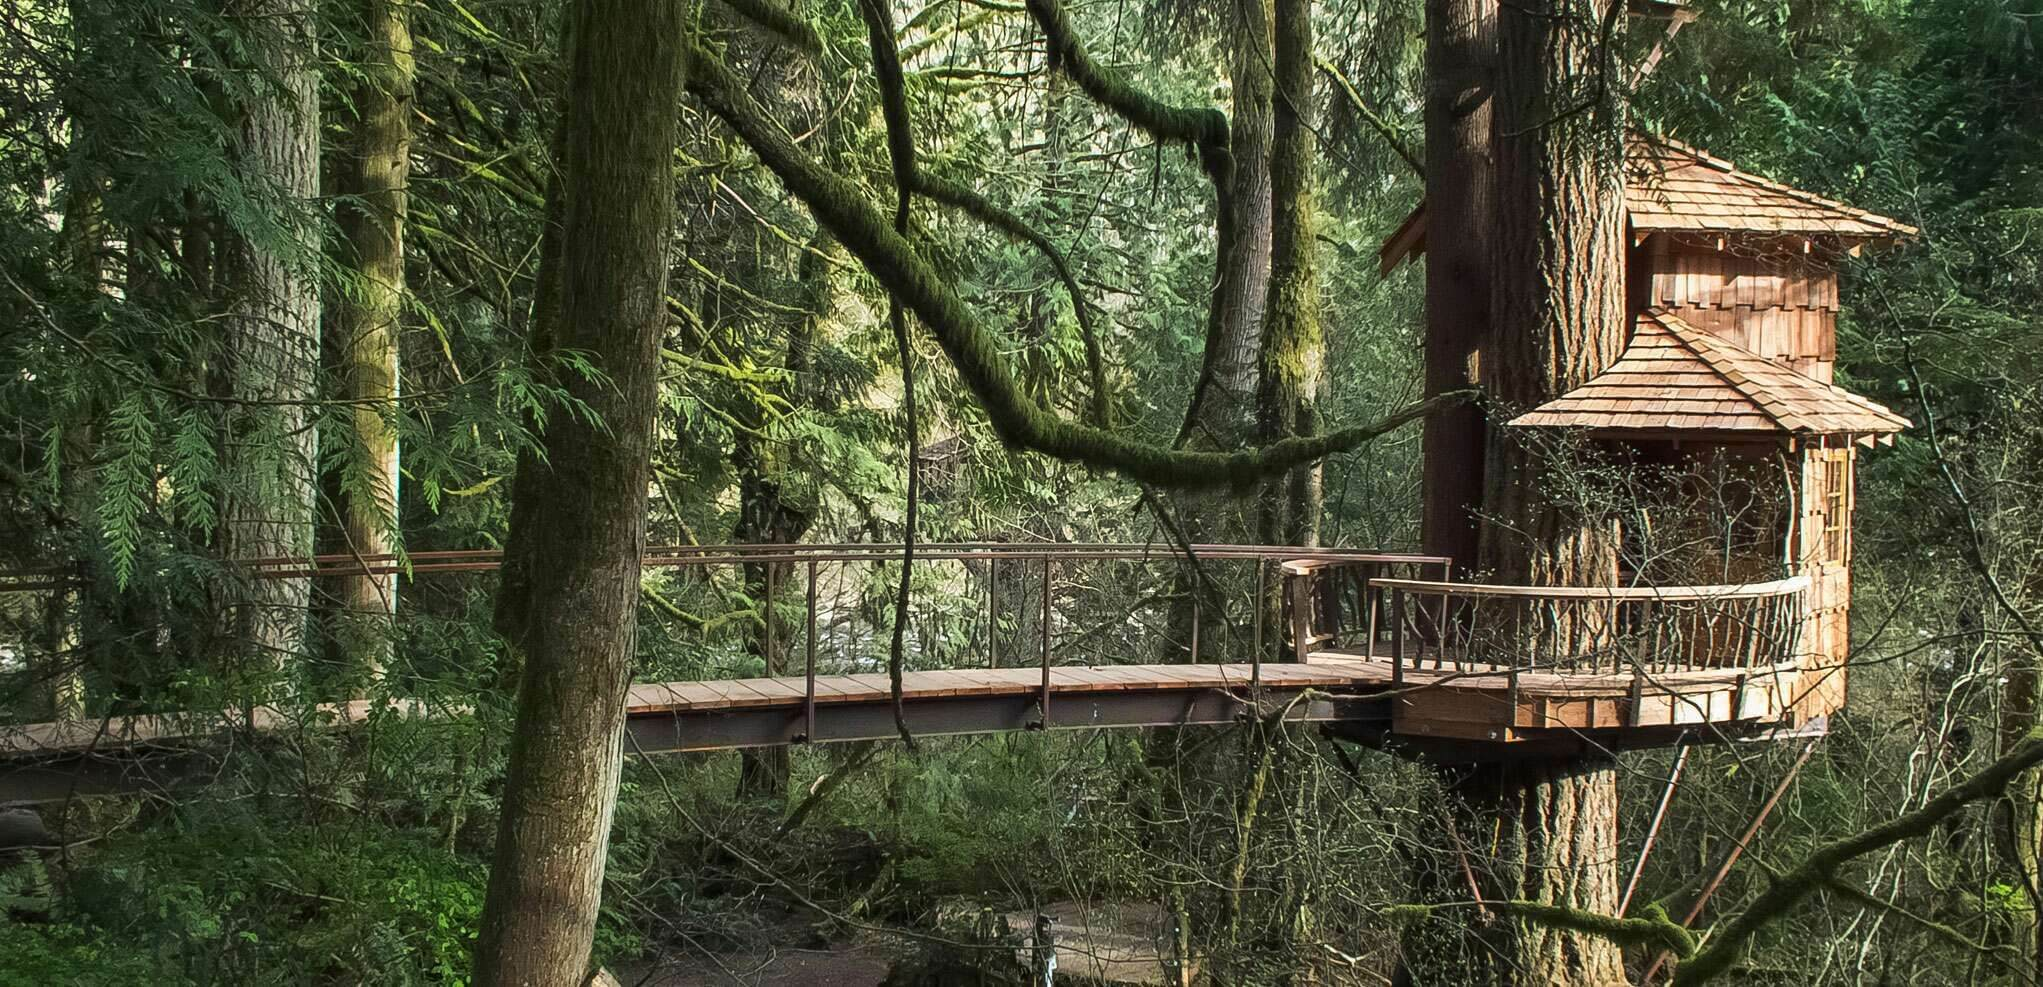 A view of Treehouse Point in Washington tucked on a tree